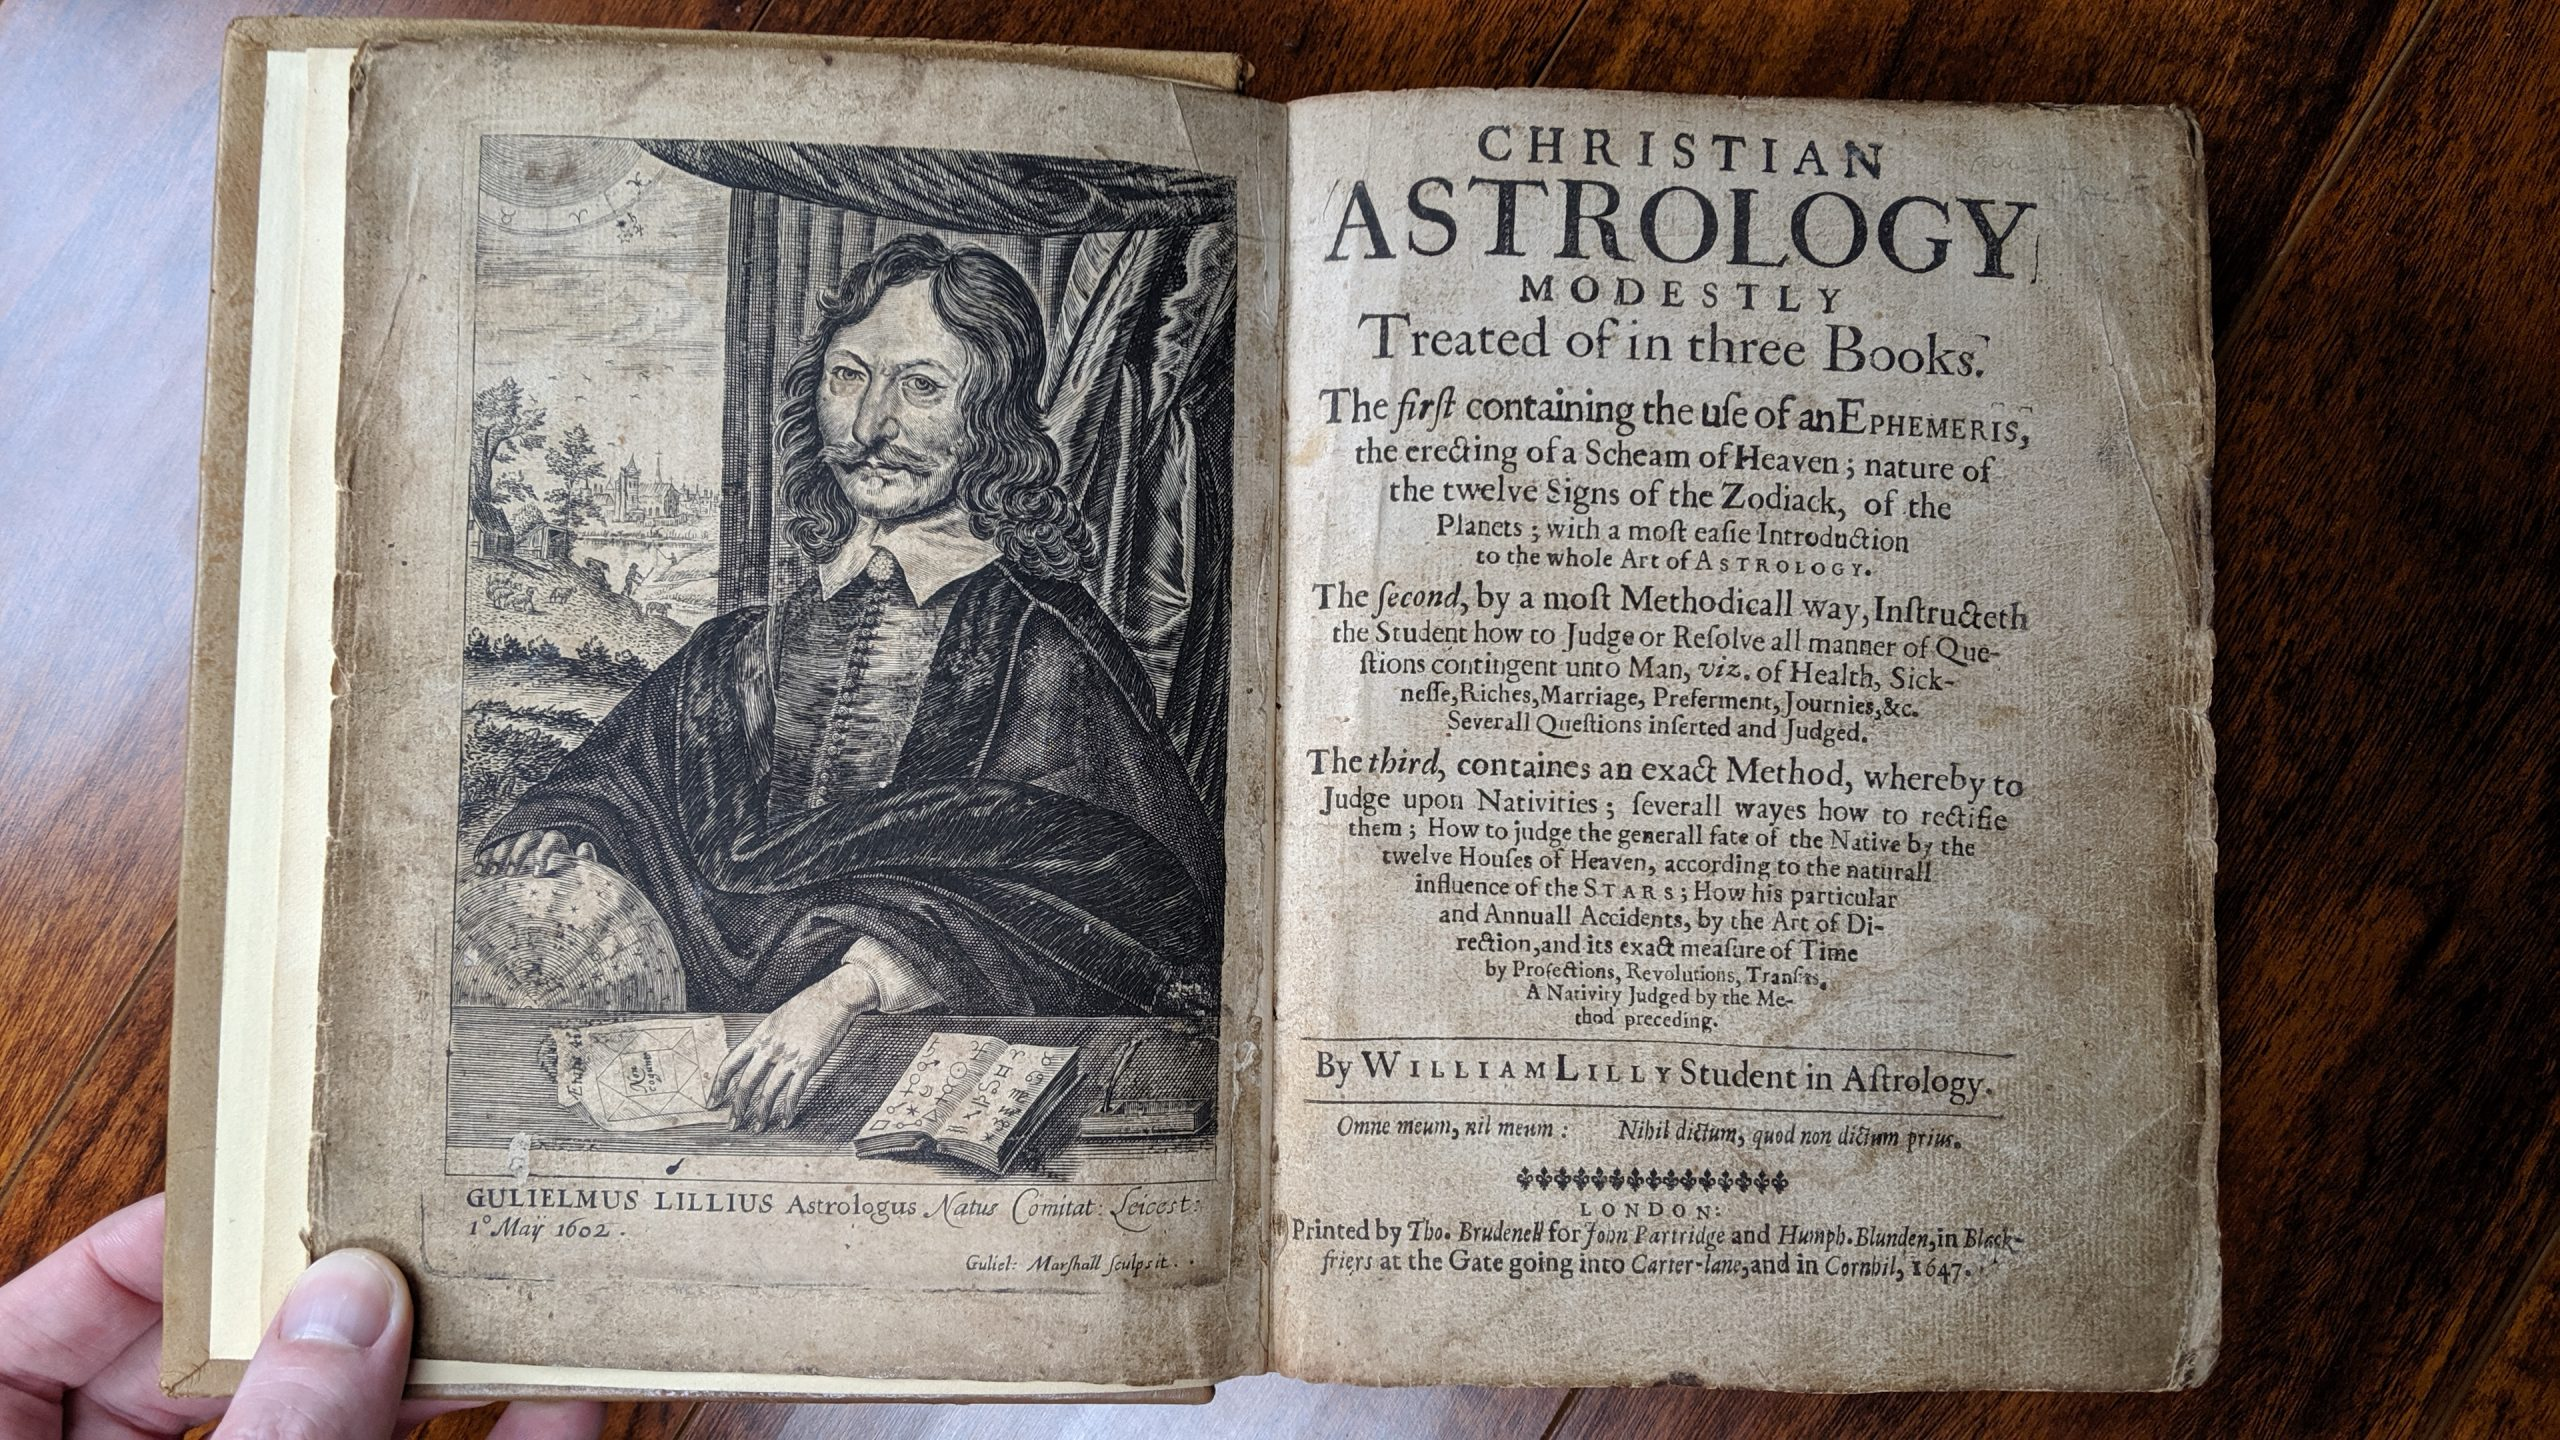 William Lilly Portrait and Christian Astrology Title Page